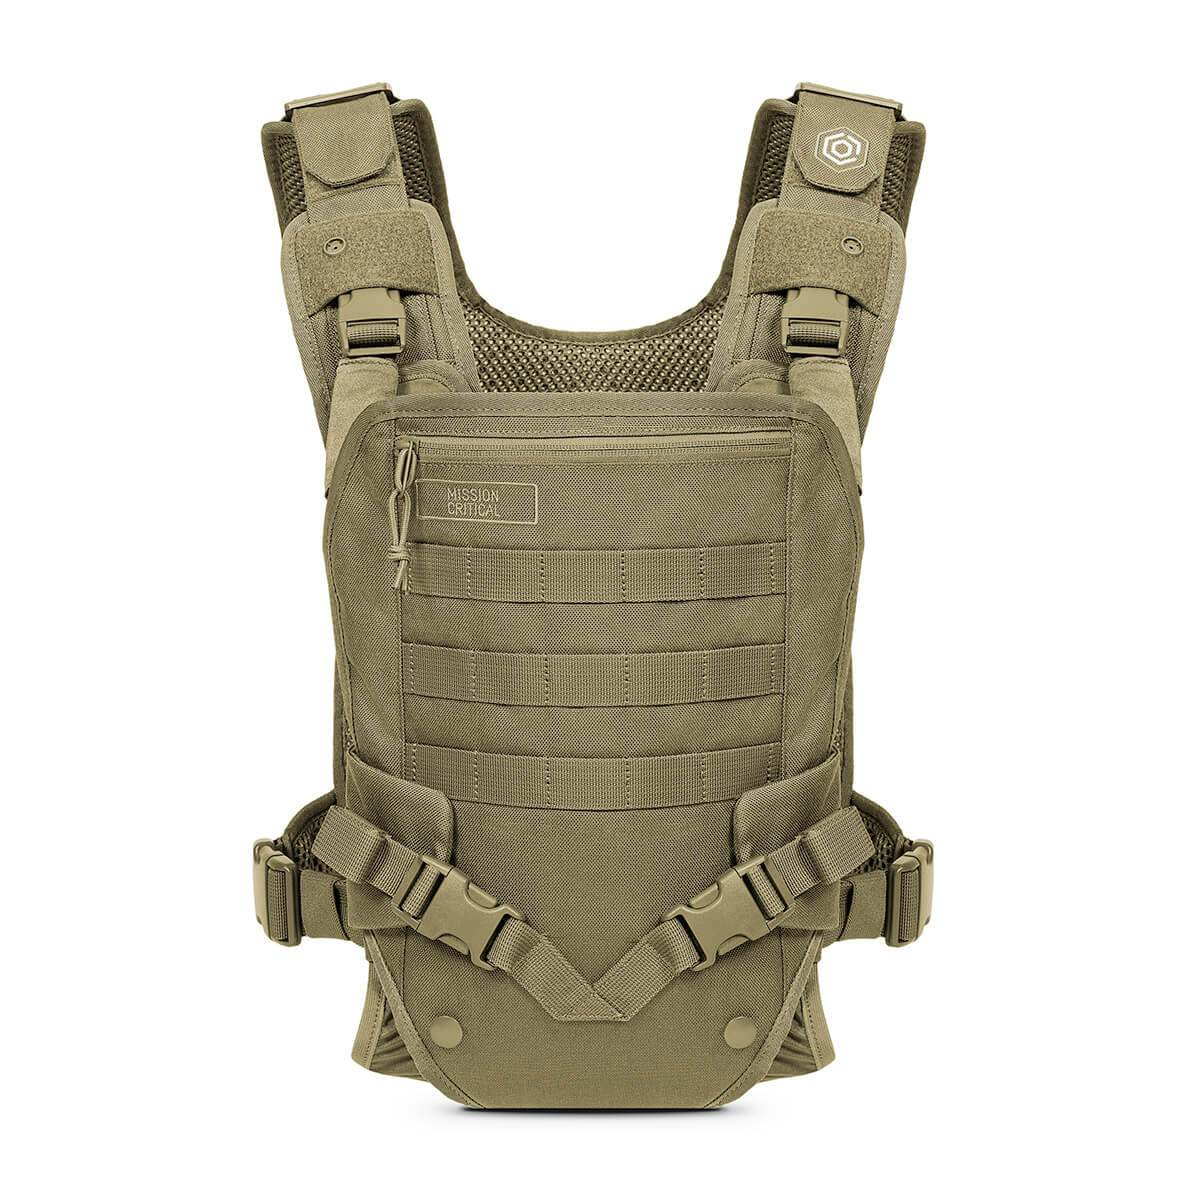 S.01 Action Baby Carrier - Range Kit